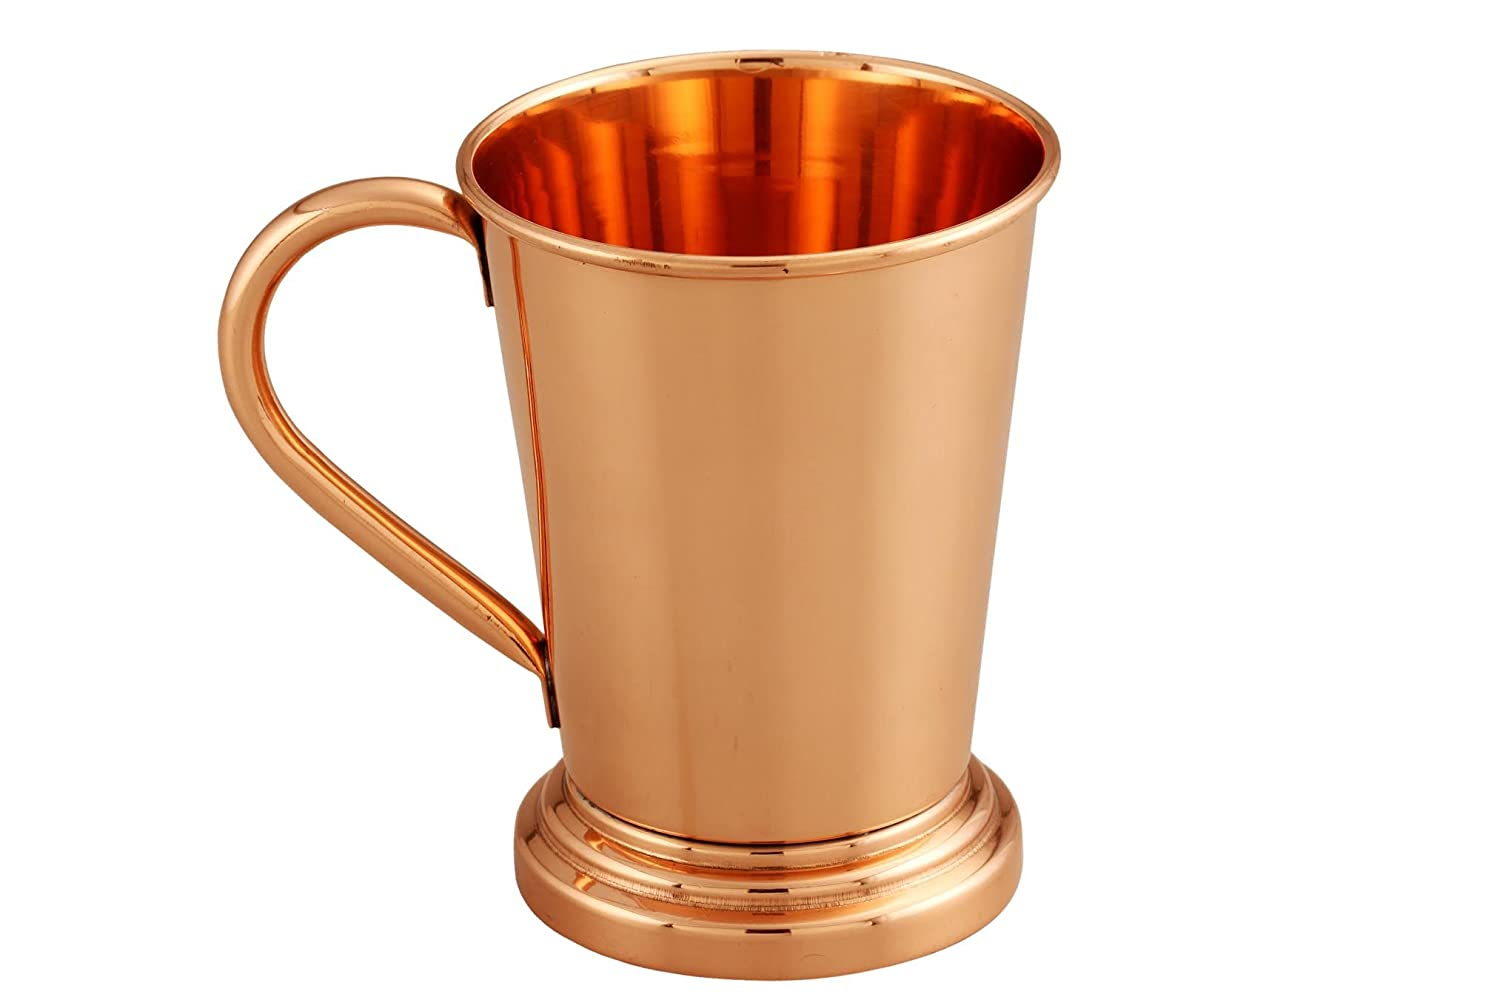 Melange 100% Authentic Copper Artisan Collection Moscow Mule Mug, Size-16 Oz, Set of 4 Mugs 724190532805